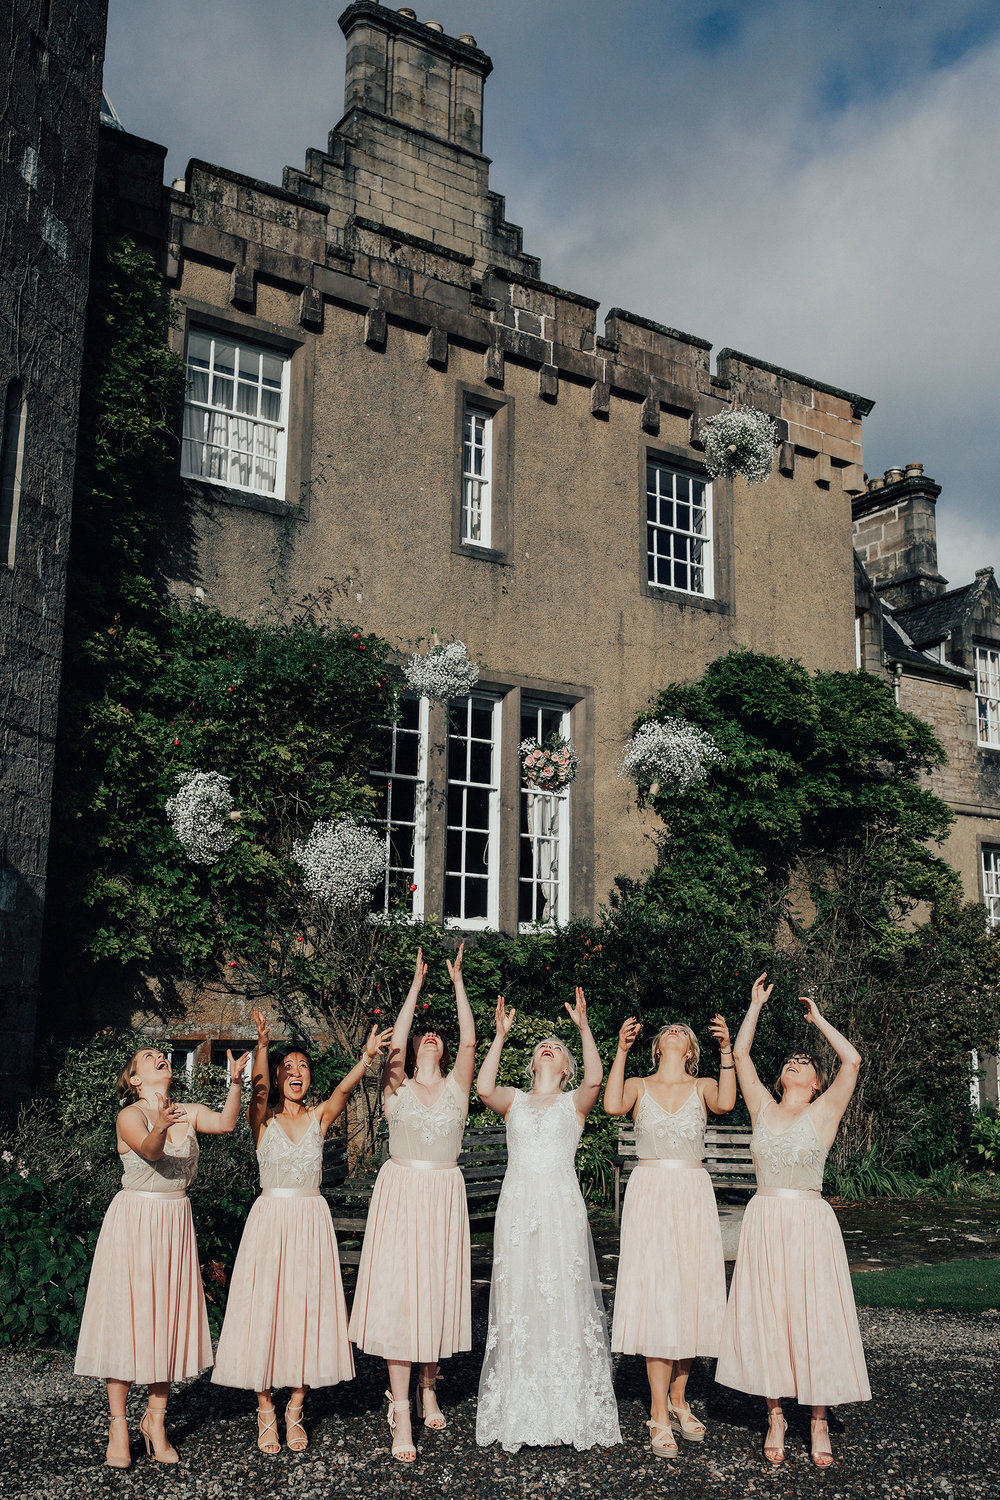 BOTURICH_CASTLE_GLASGOW_WEDDING_PHOTOGRAPHY_PJ_PHILLIPS_PHOTOGRAPHY_6.jpg